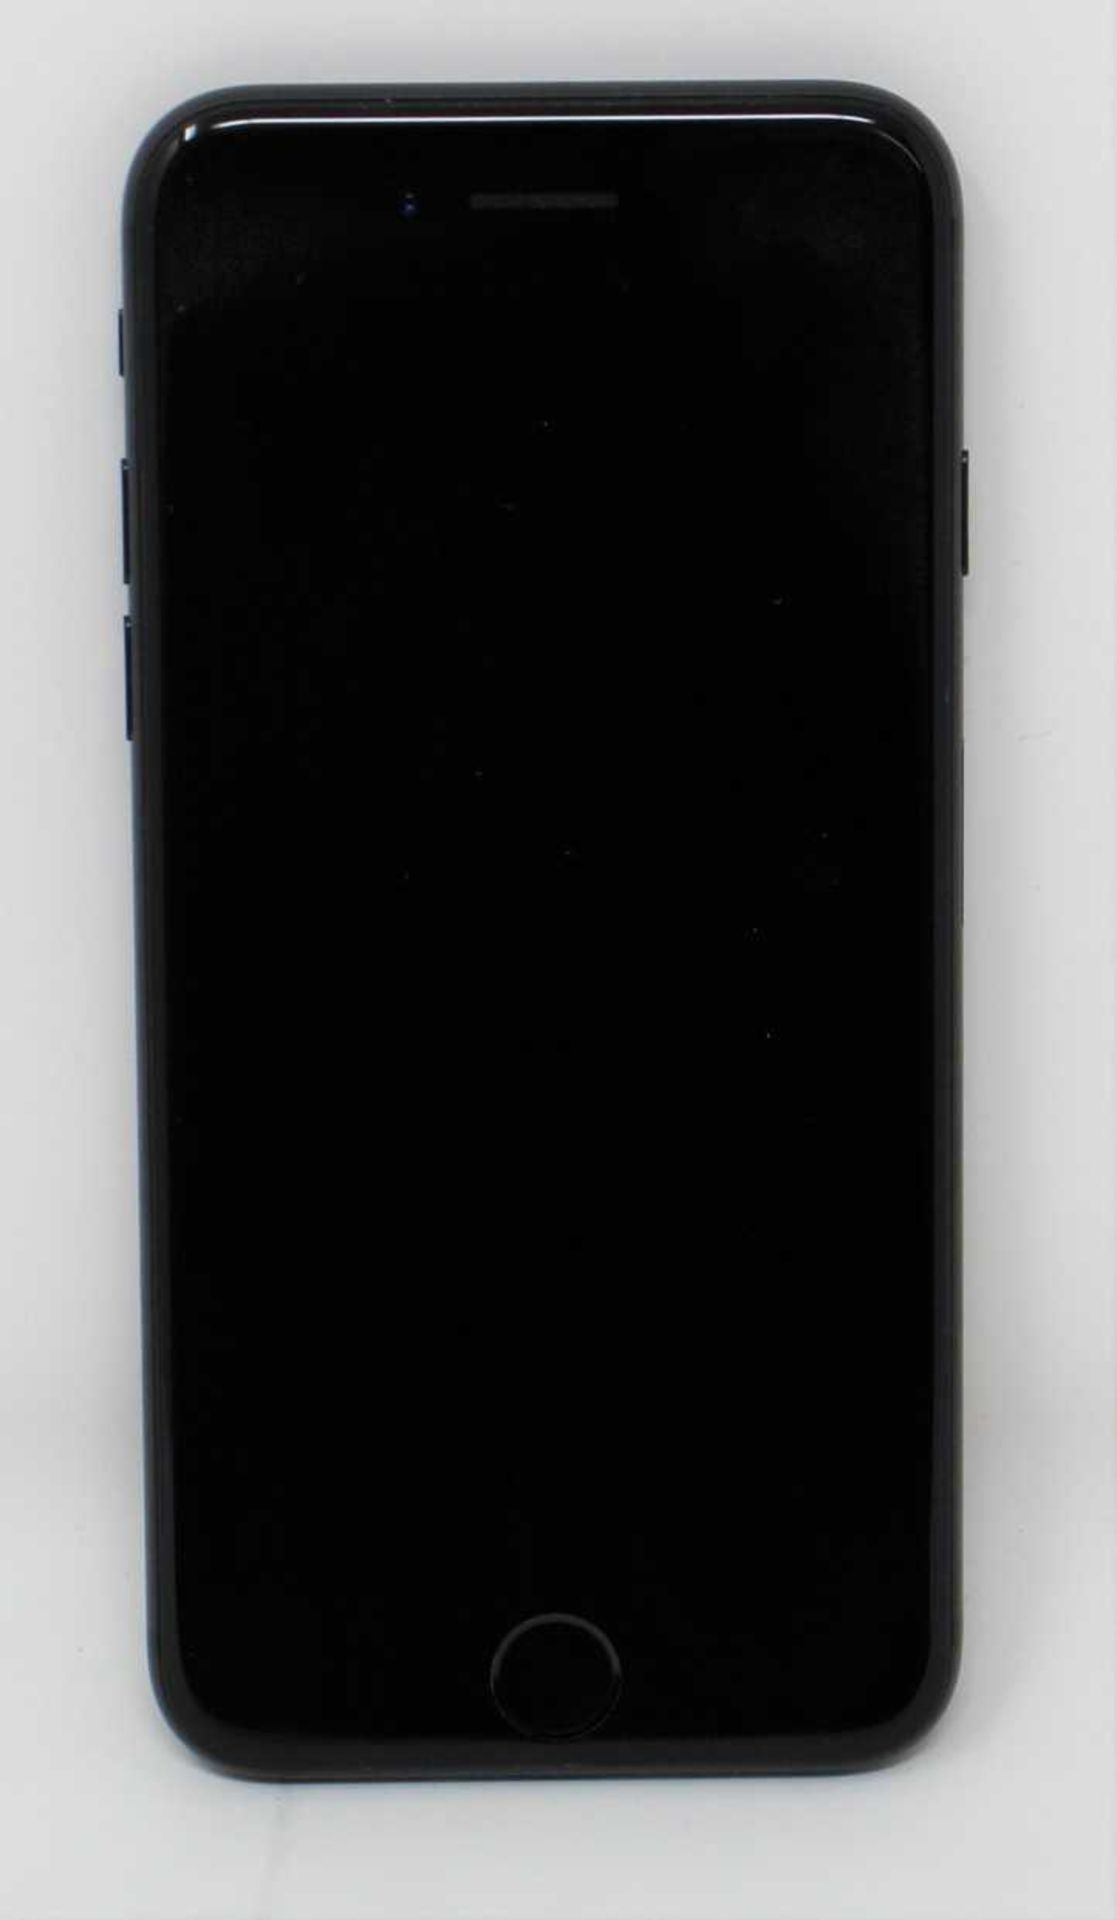 A pre-owned Apple iPhone 7 (AT&T/T-Mobile/Global/A1778) 32GB in Black (iCloud activation clear) (